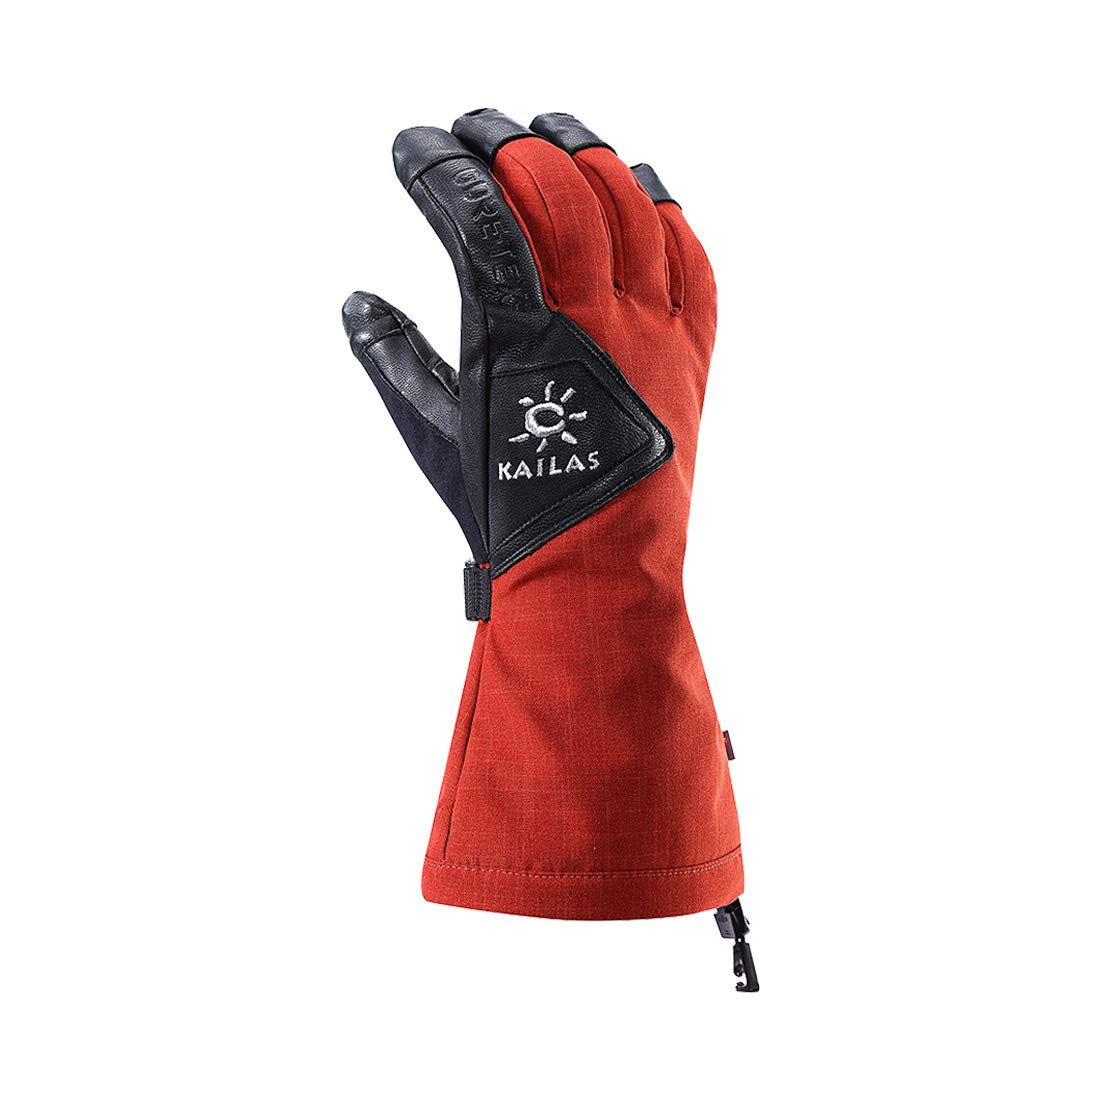 KAILAS GORE-TEX 3-in-1 Pro Ski Gloves – Women's(Dark Red,S) by KAILAS (Image #1)